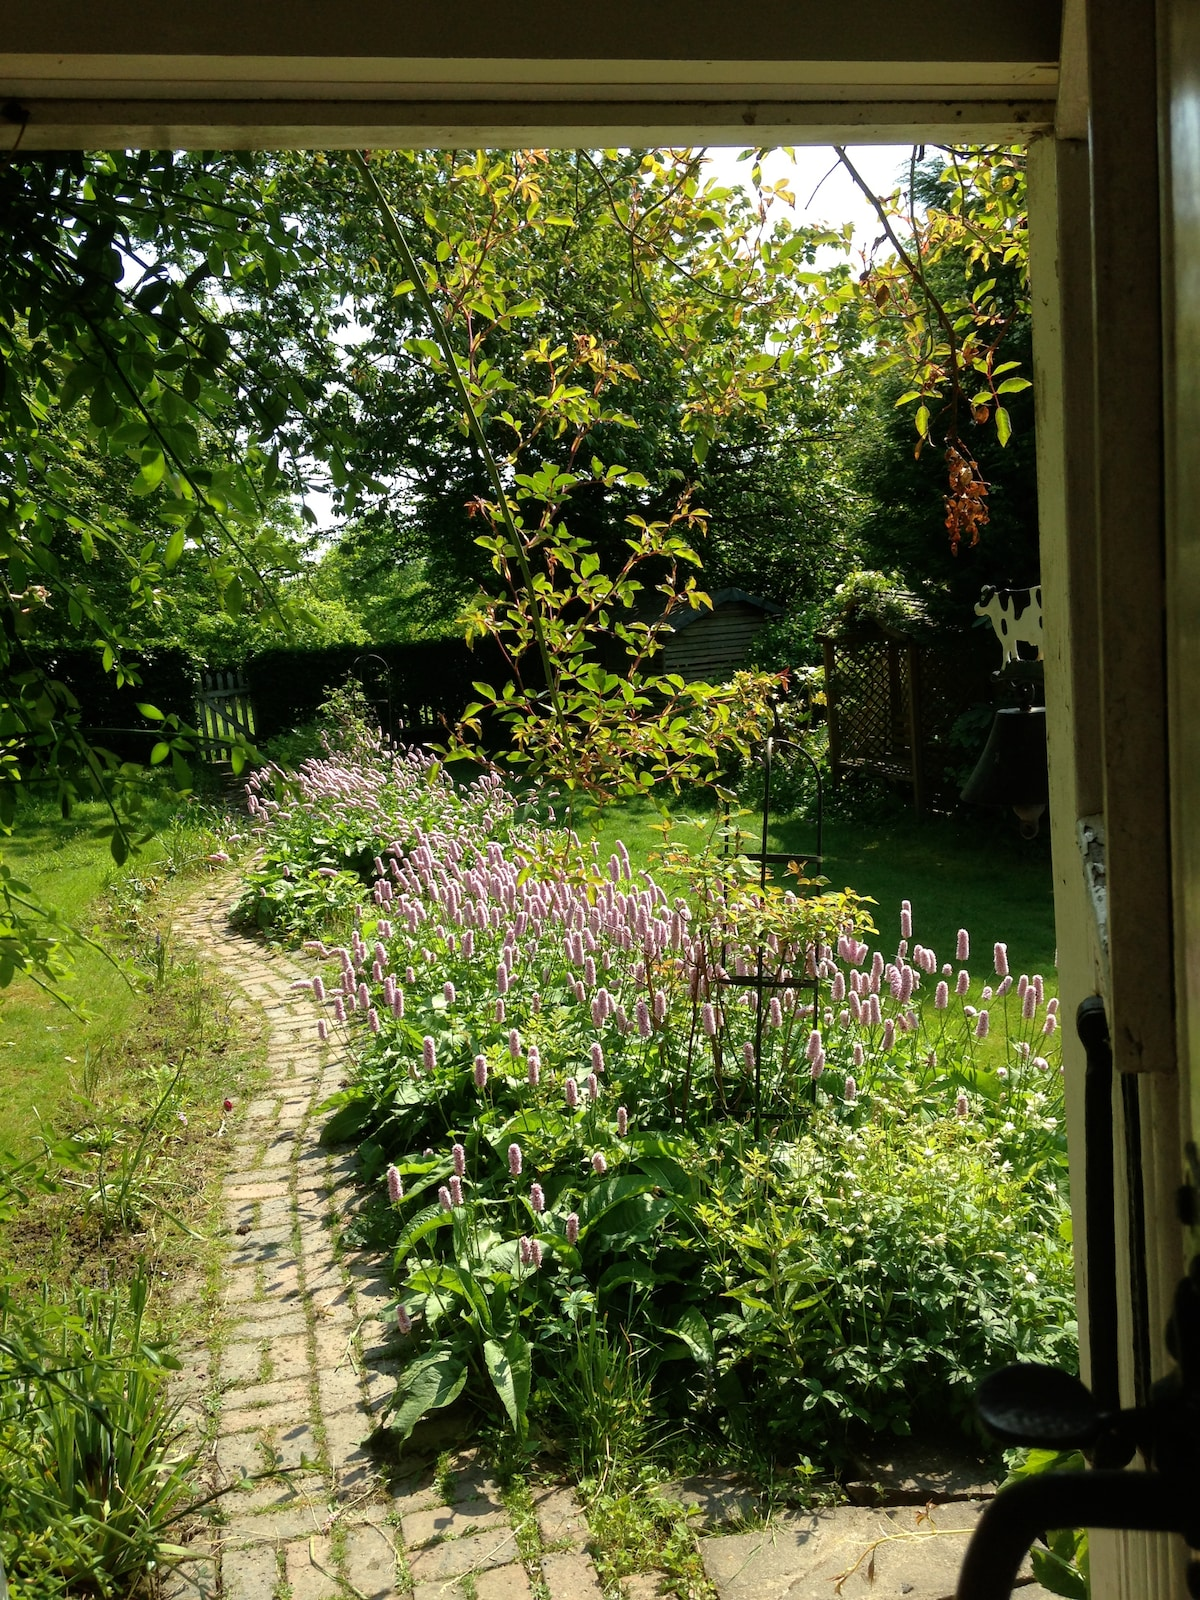 View of the garden with the old back door open